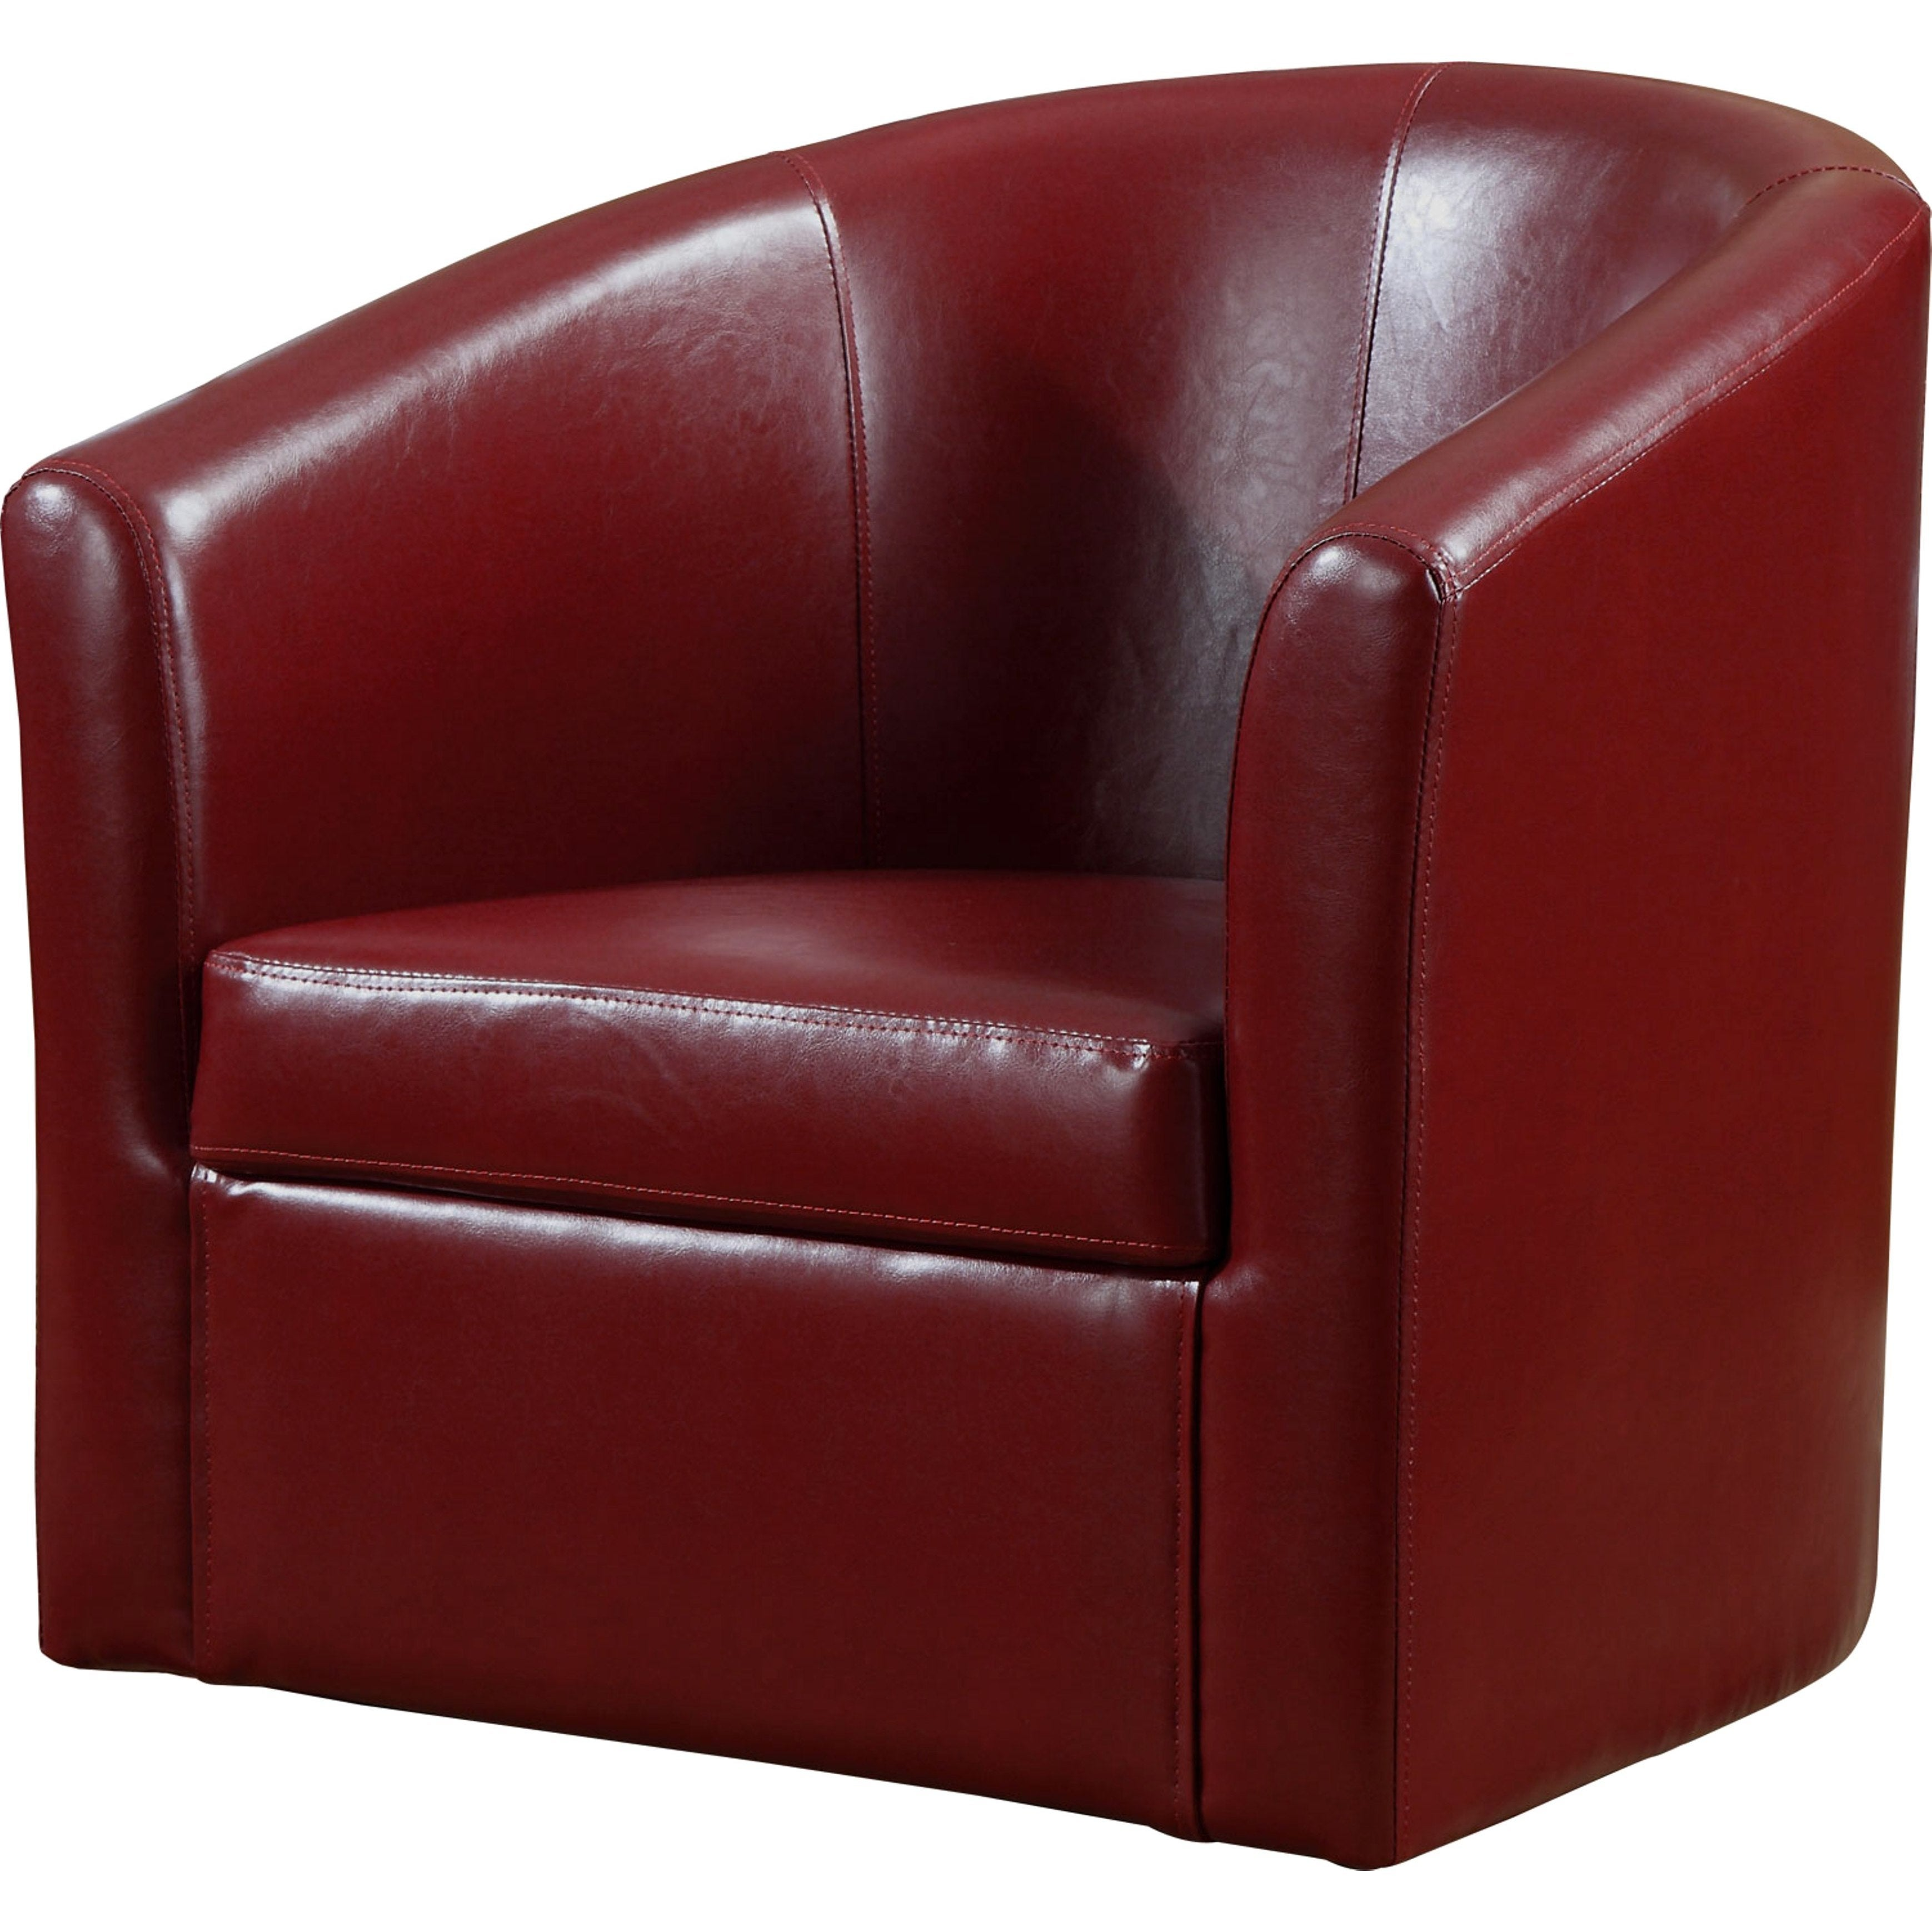 Shop Living Room Barrel Style Red Upholstered Swivel Accent Chair   Free  Shipping Today   Overstock.com   16287364